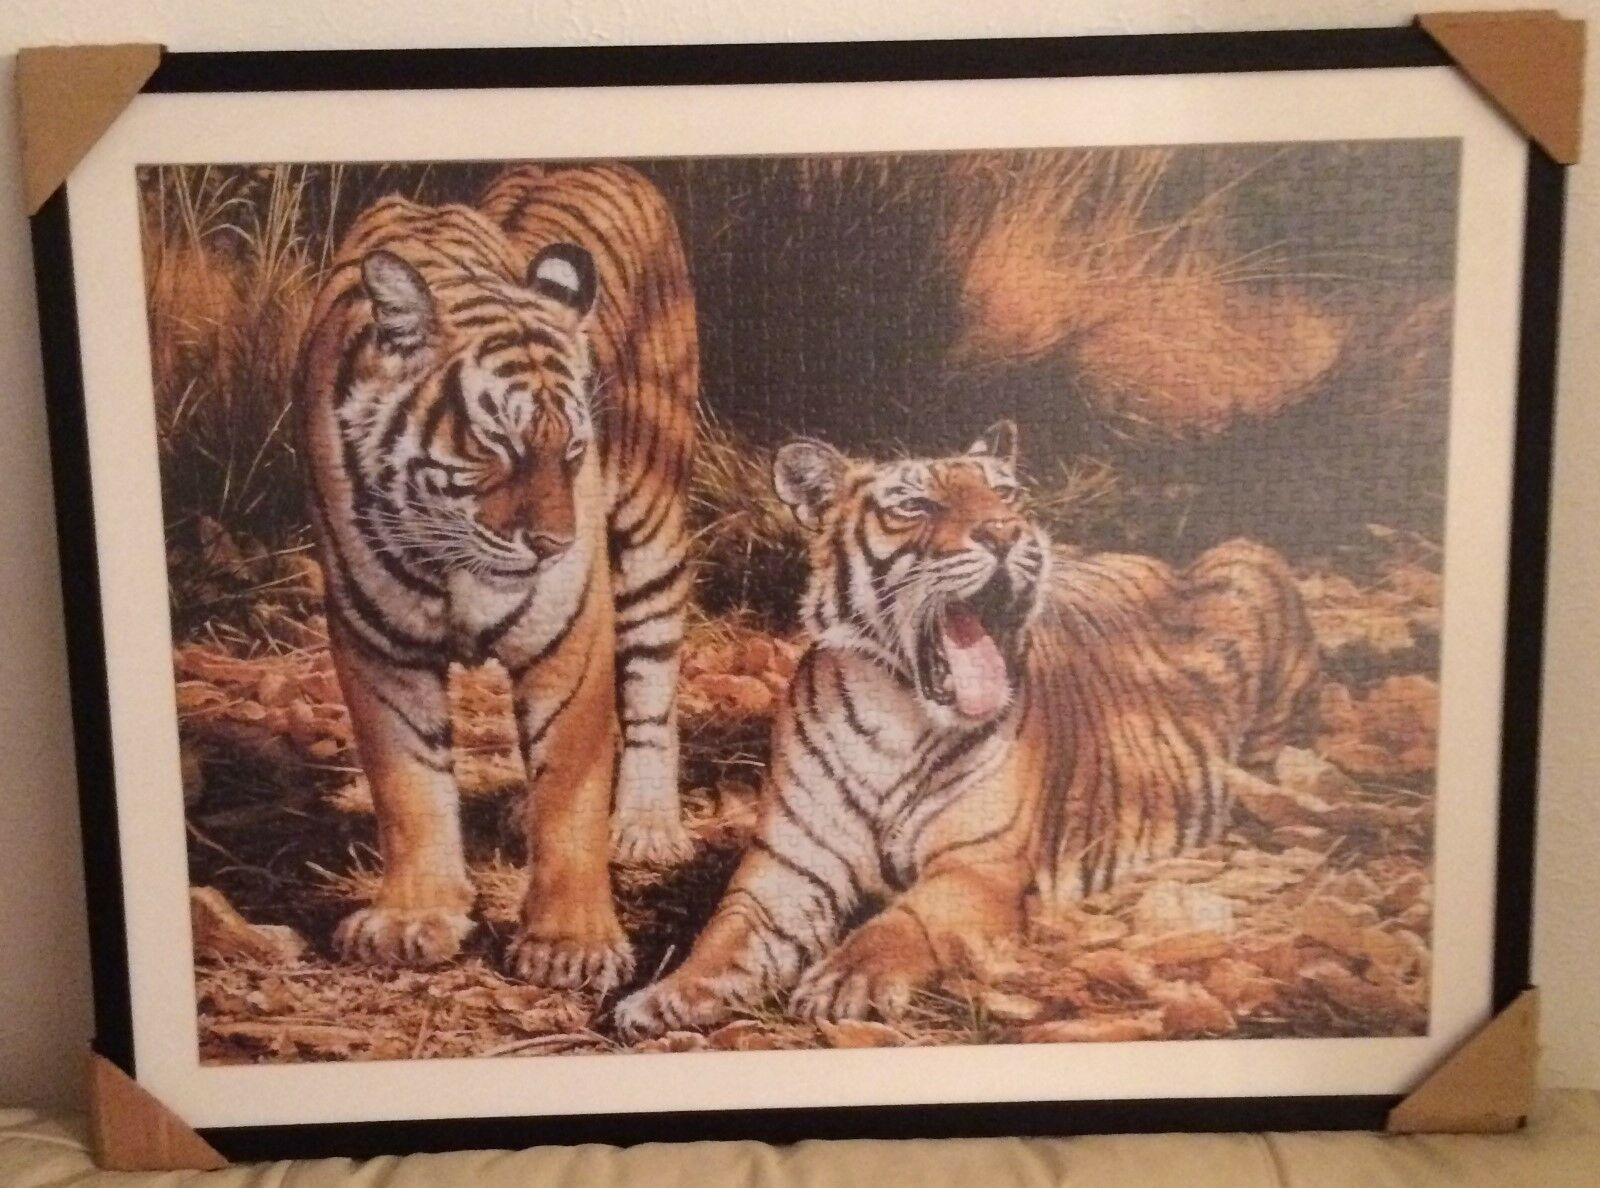 Framed TIGER jigsaw 36 pieces by 28 pieces L@@K